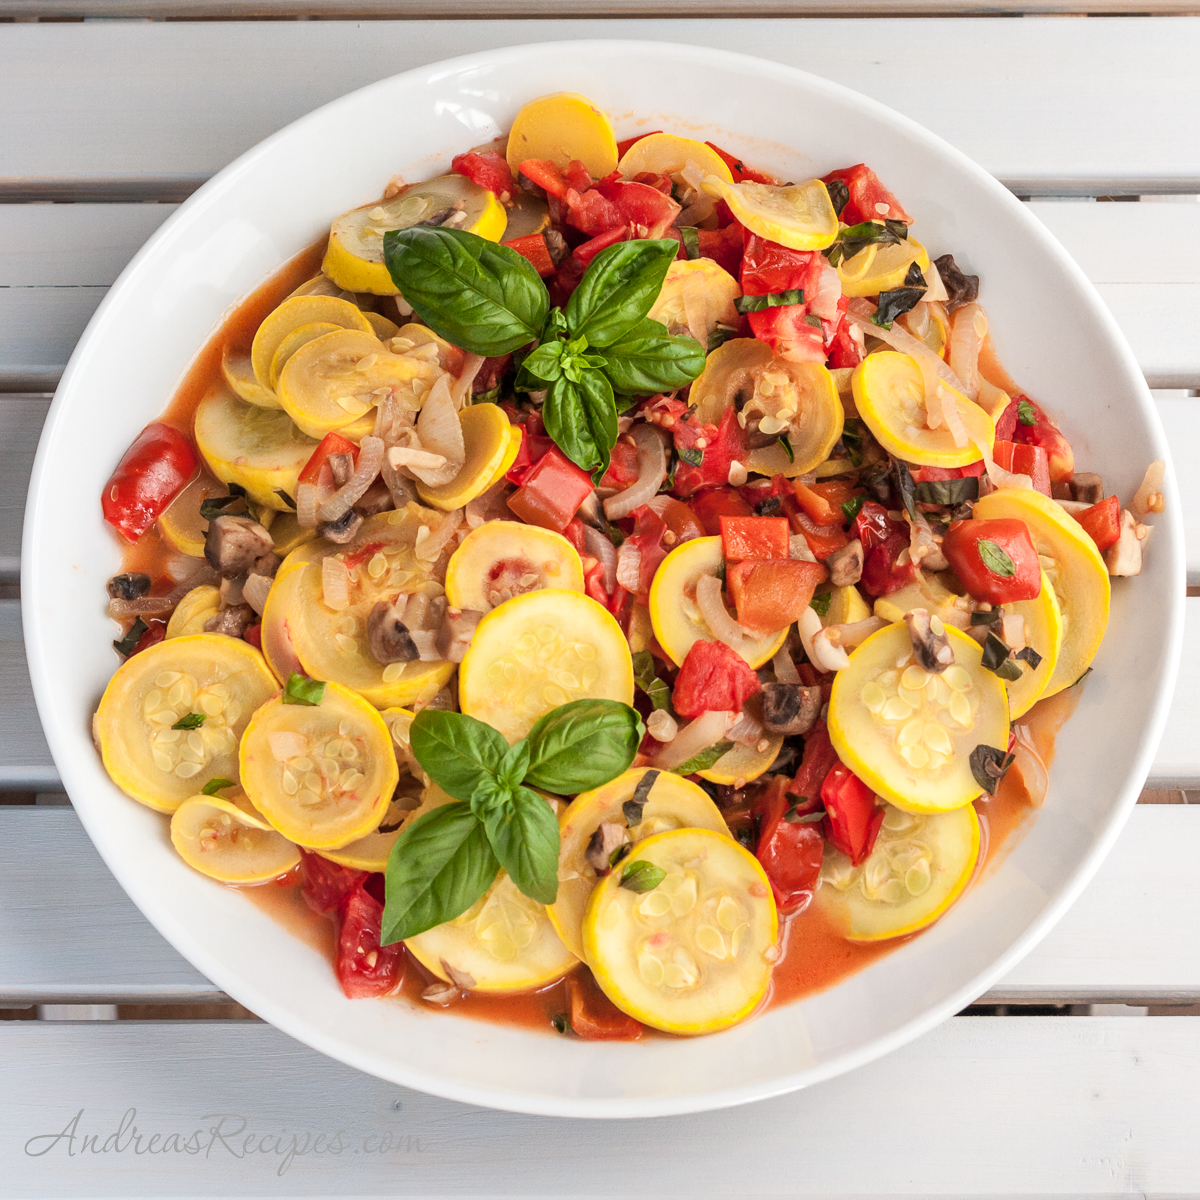 Sauteed Zucchini with Tomatoes, Mushrooms, Peppers, and Basil - Andrea Meyers